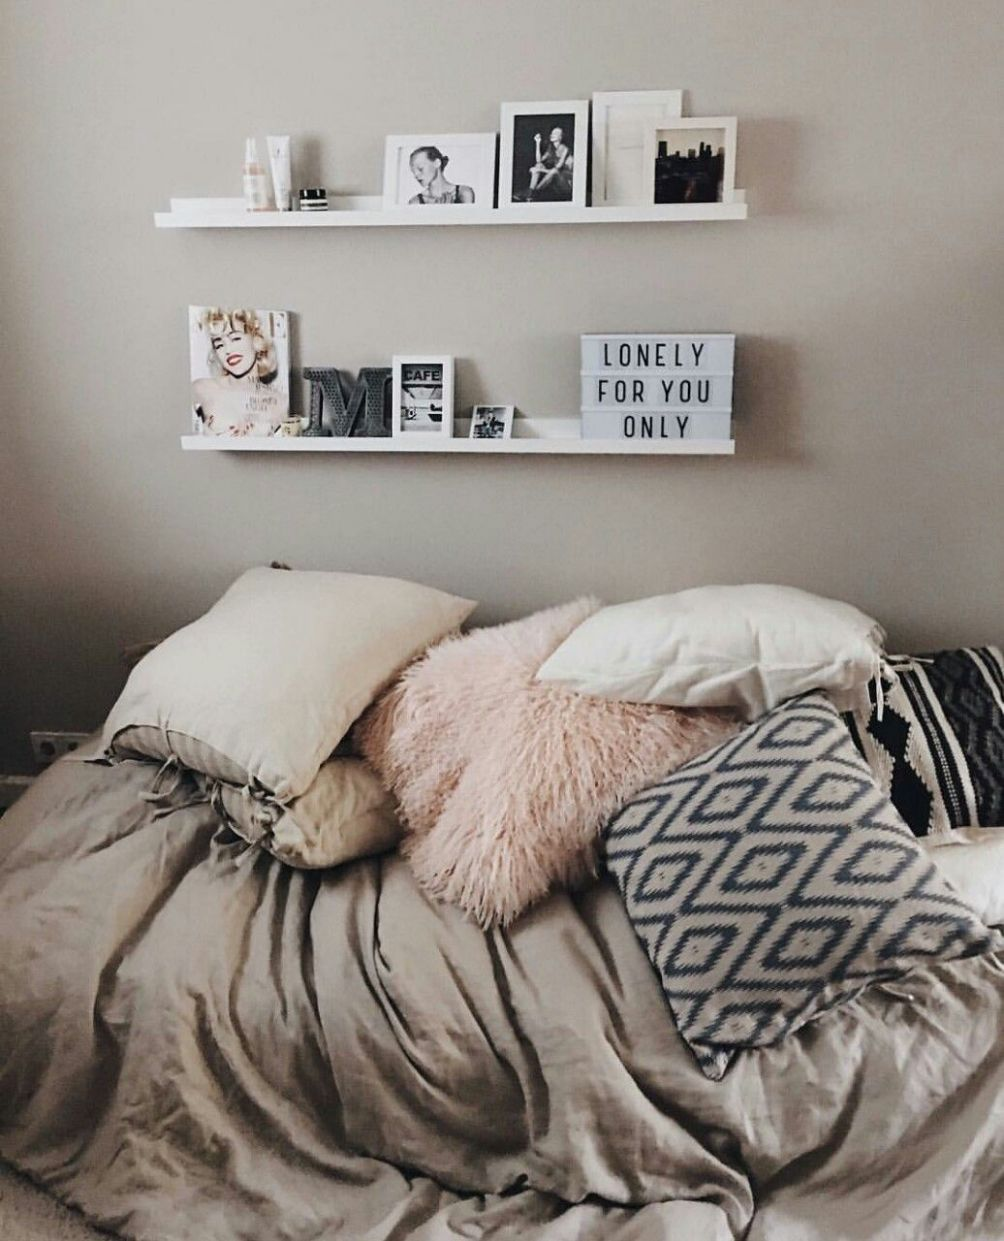 Halcyon Rooms : Photo (With images) | Room inspiration, Bedroom ...